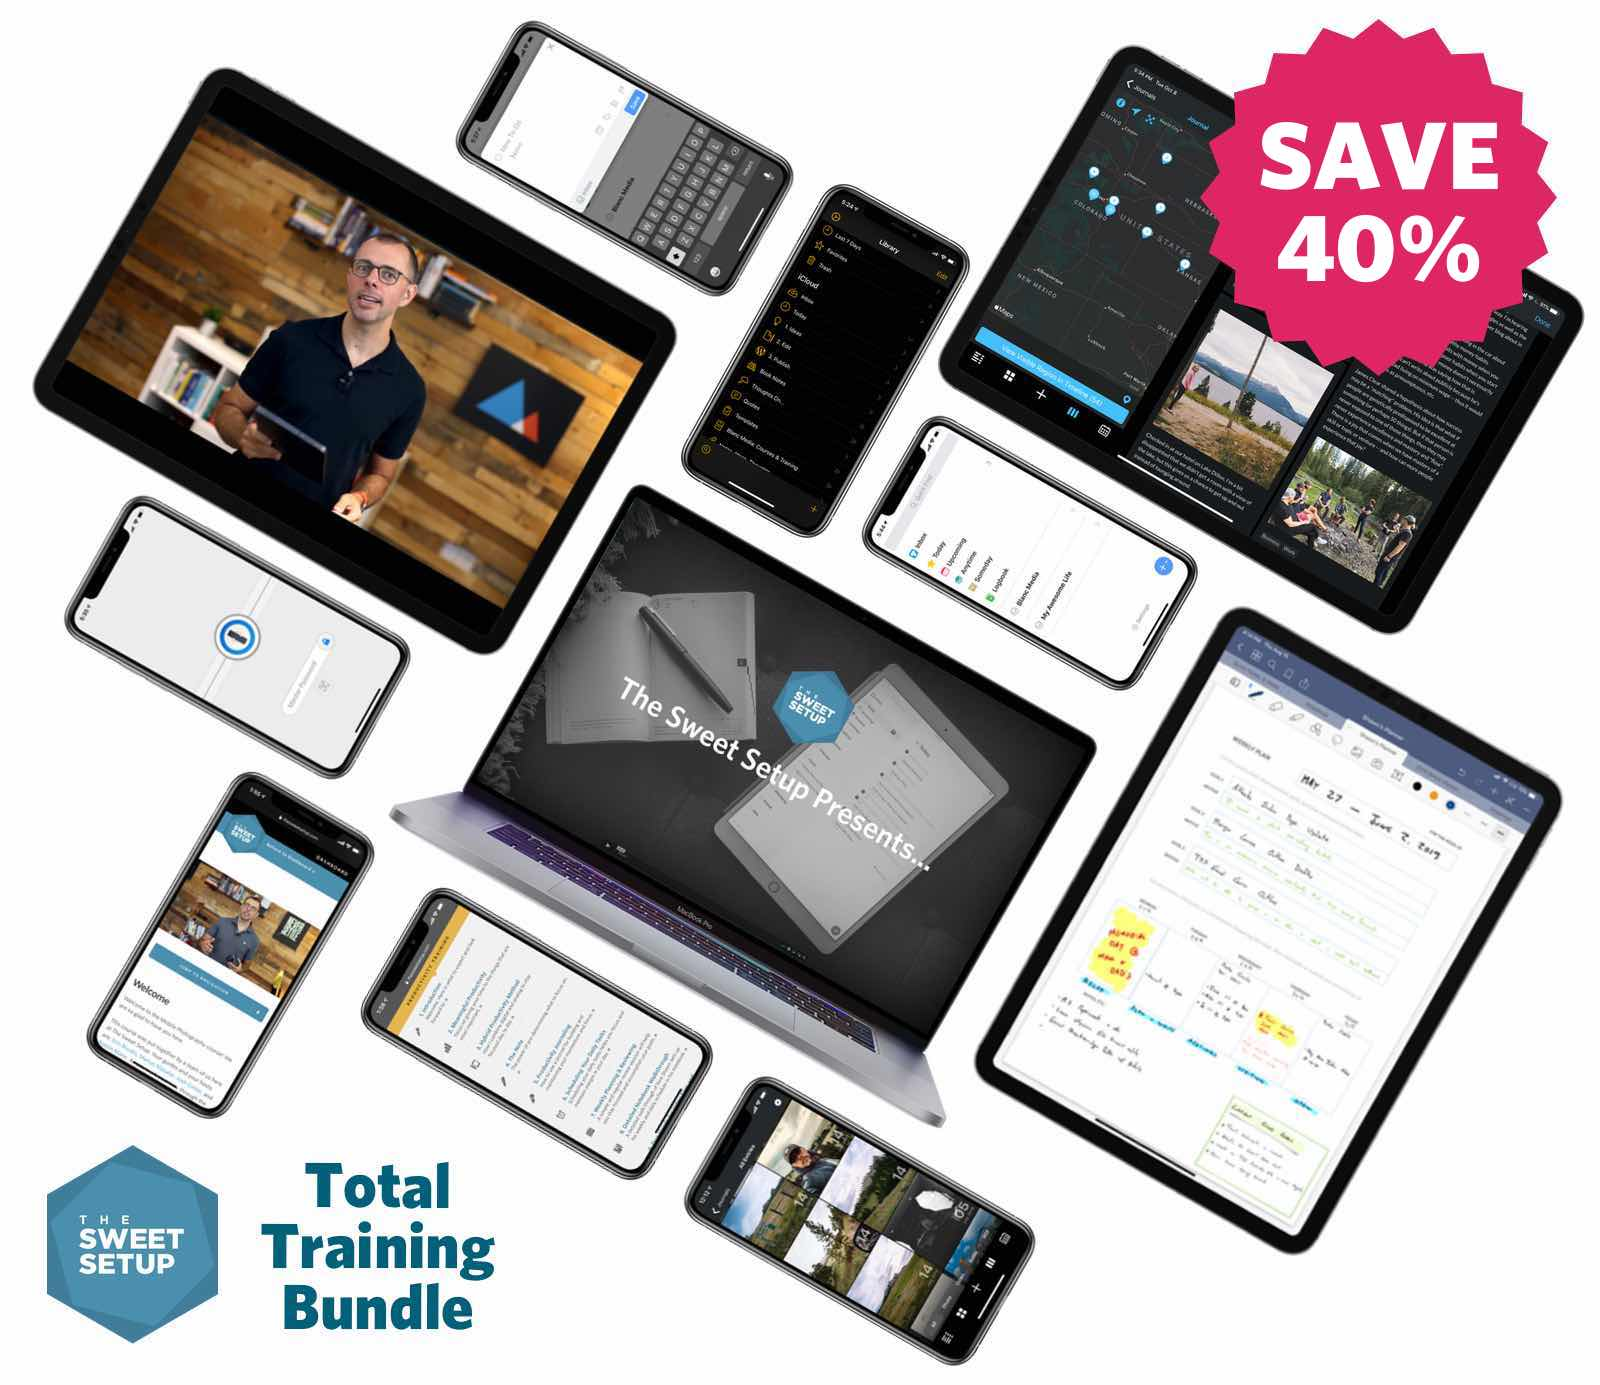 Total Training Bundle